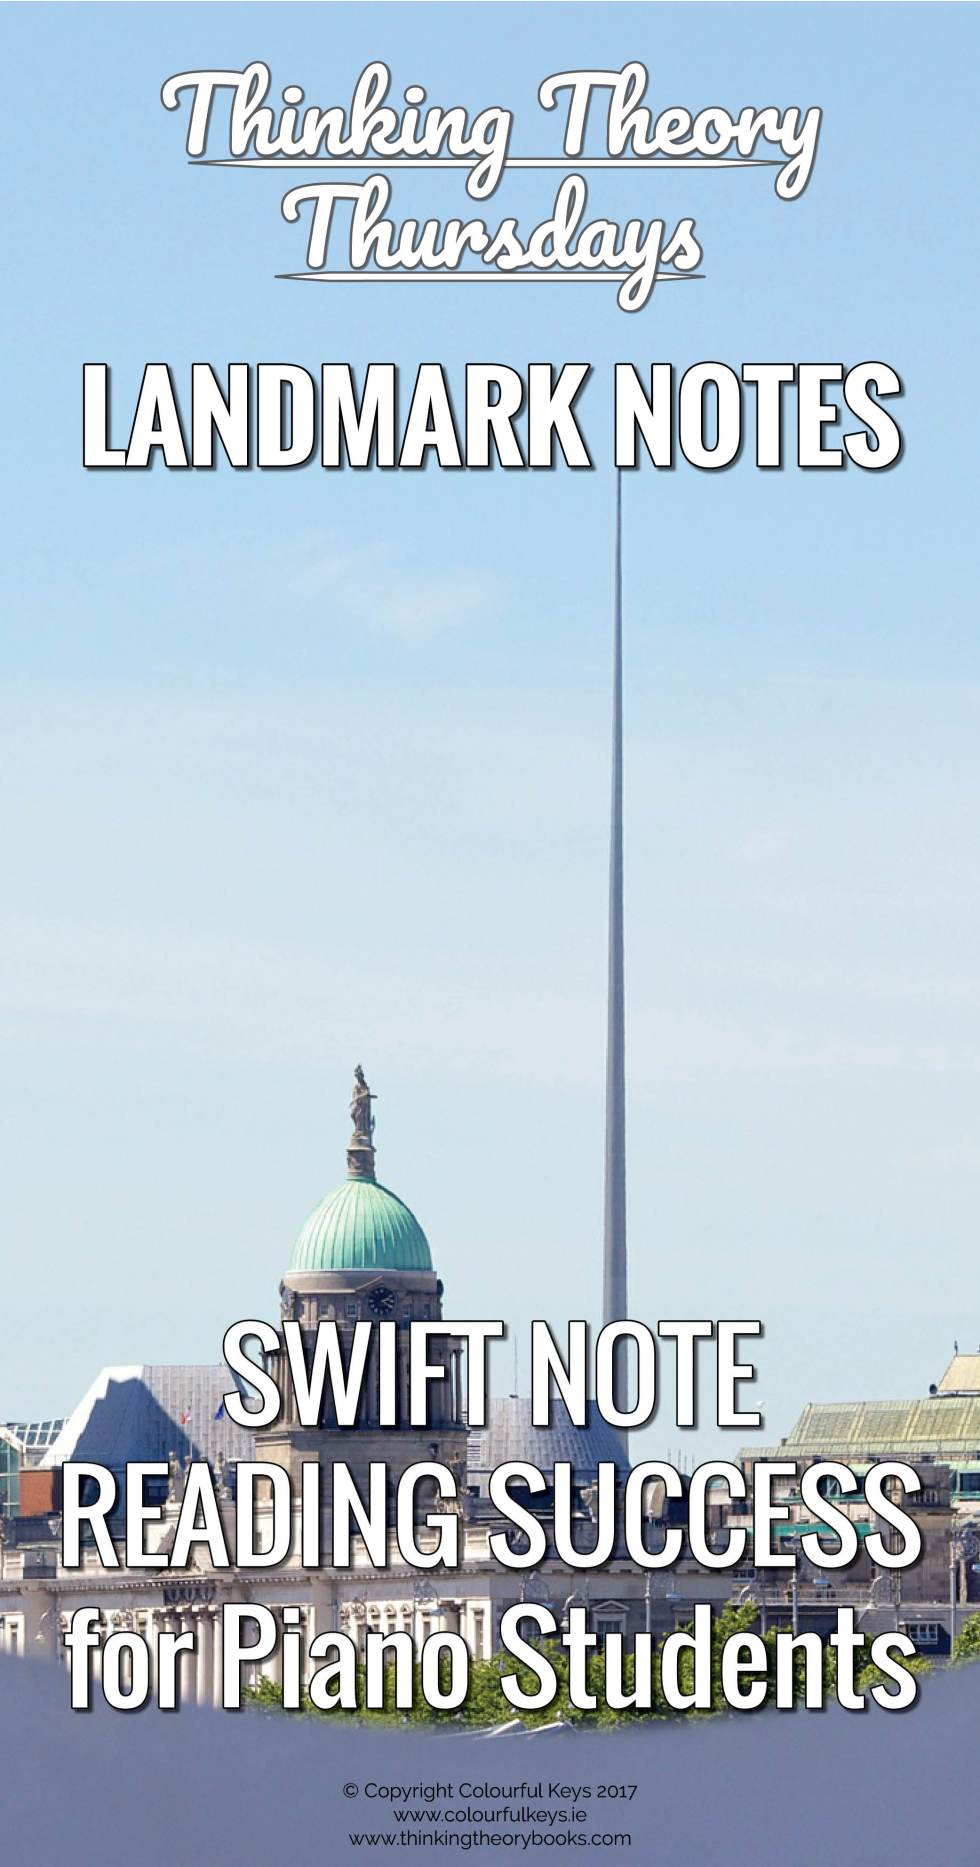 Landmark notes are the surest way to successful note reading